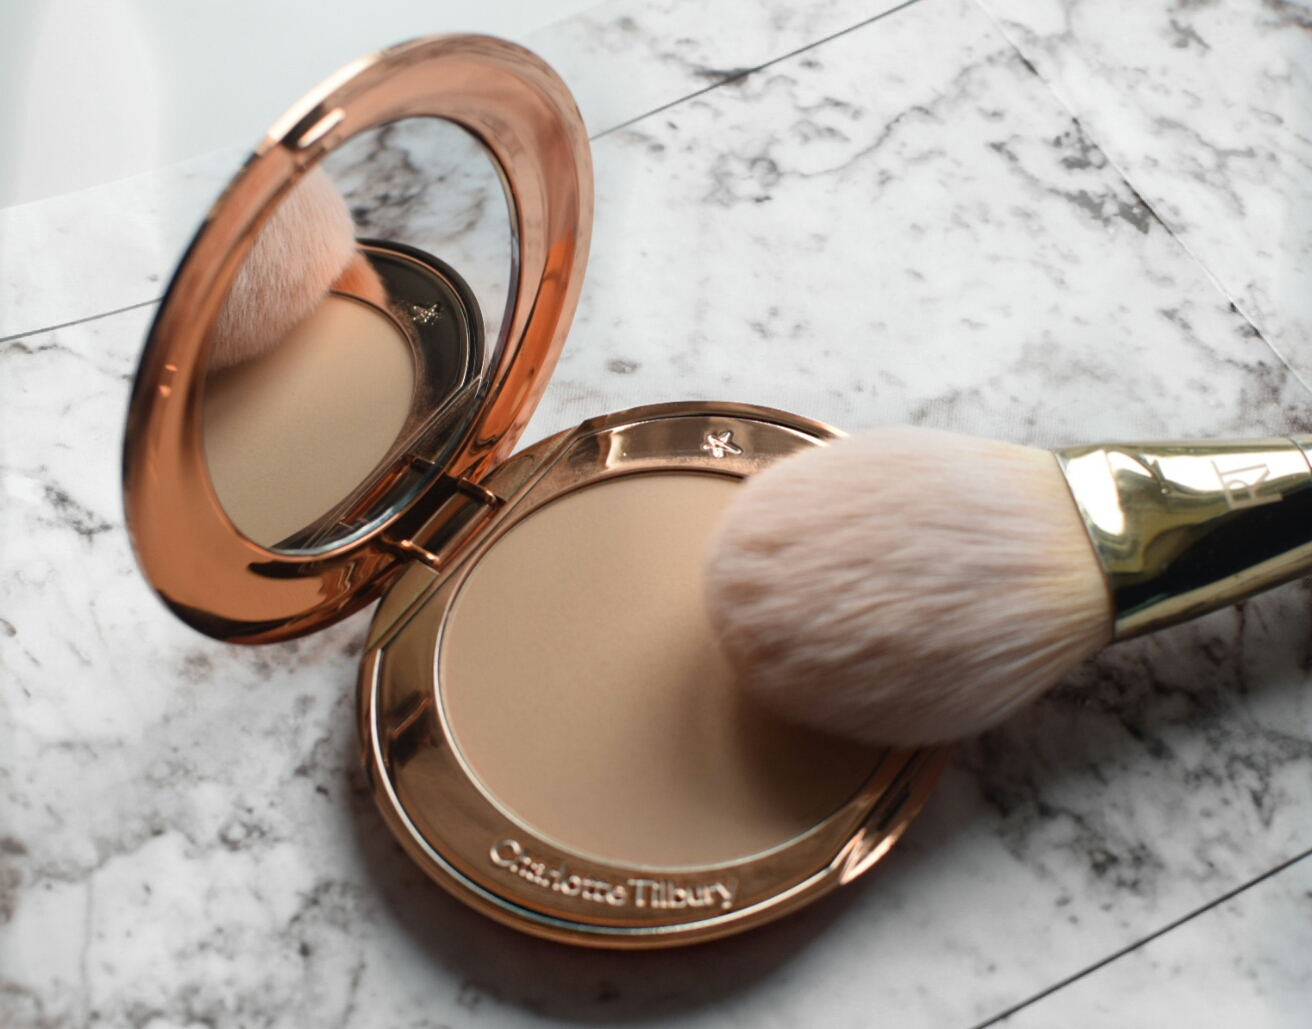 charlotte tilbury Airbrush Pressed powder